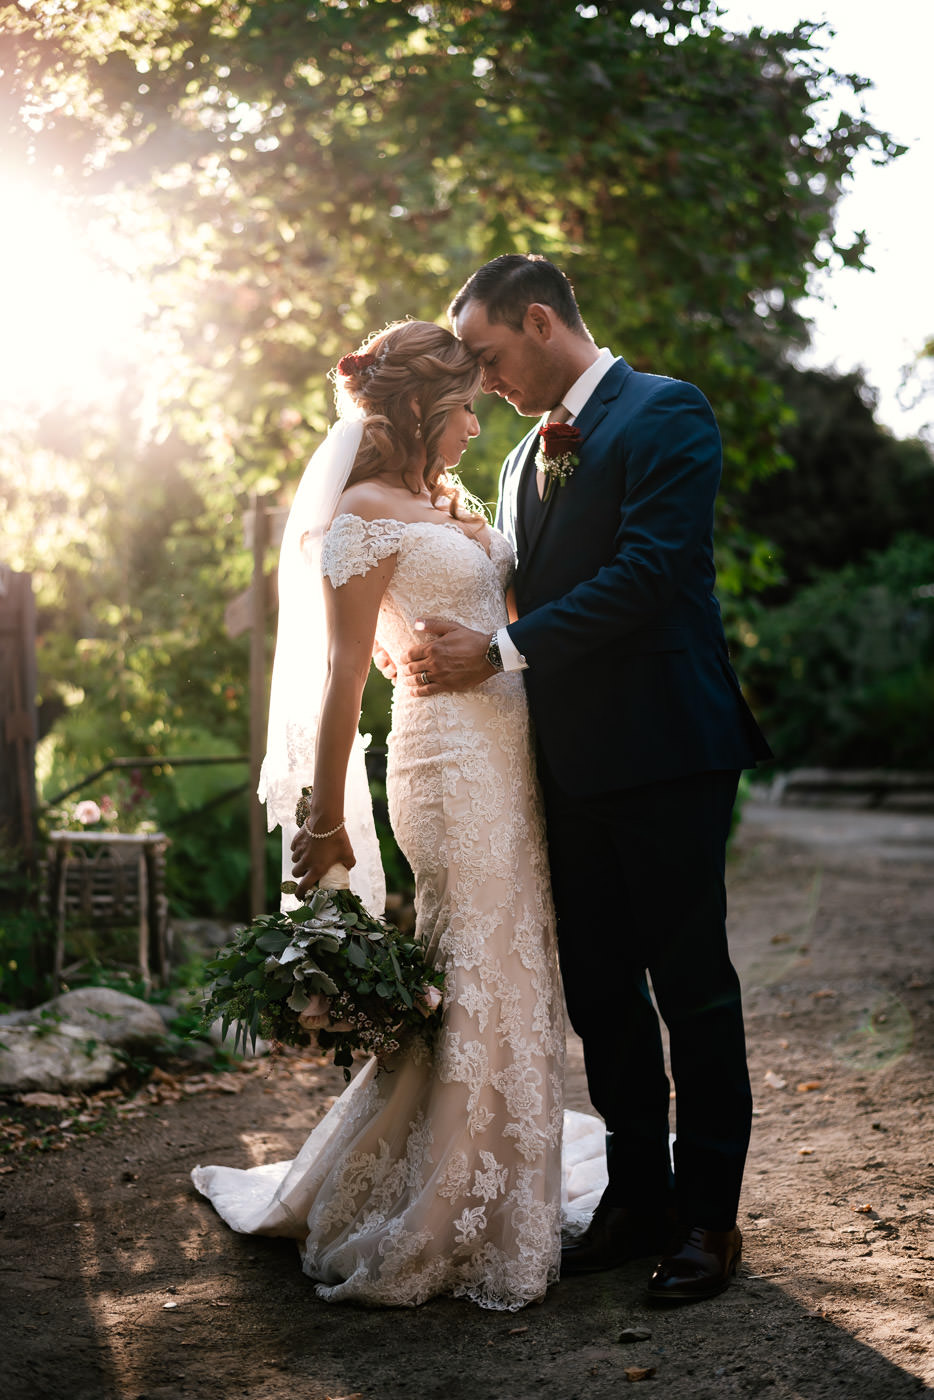 Romantic wedding photos at The Homestead in Wilshire Ranch.